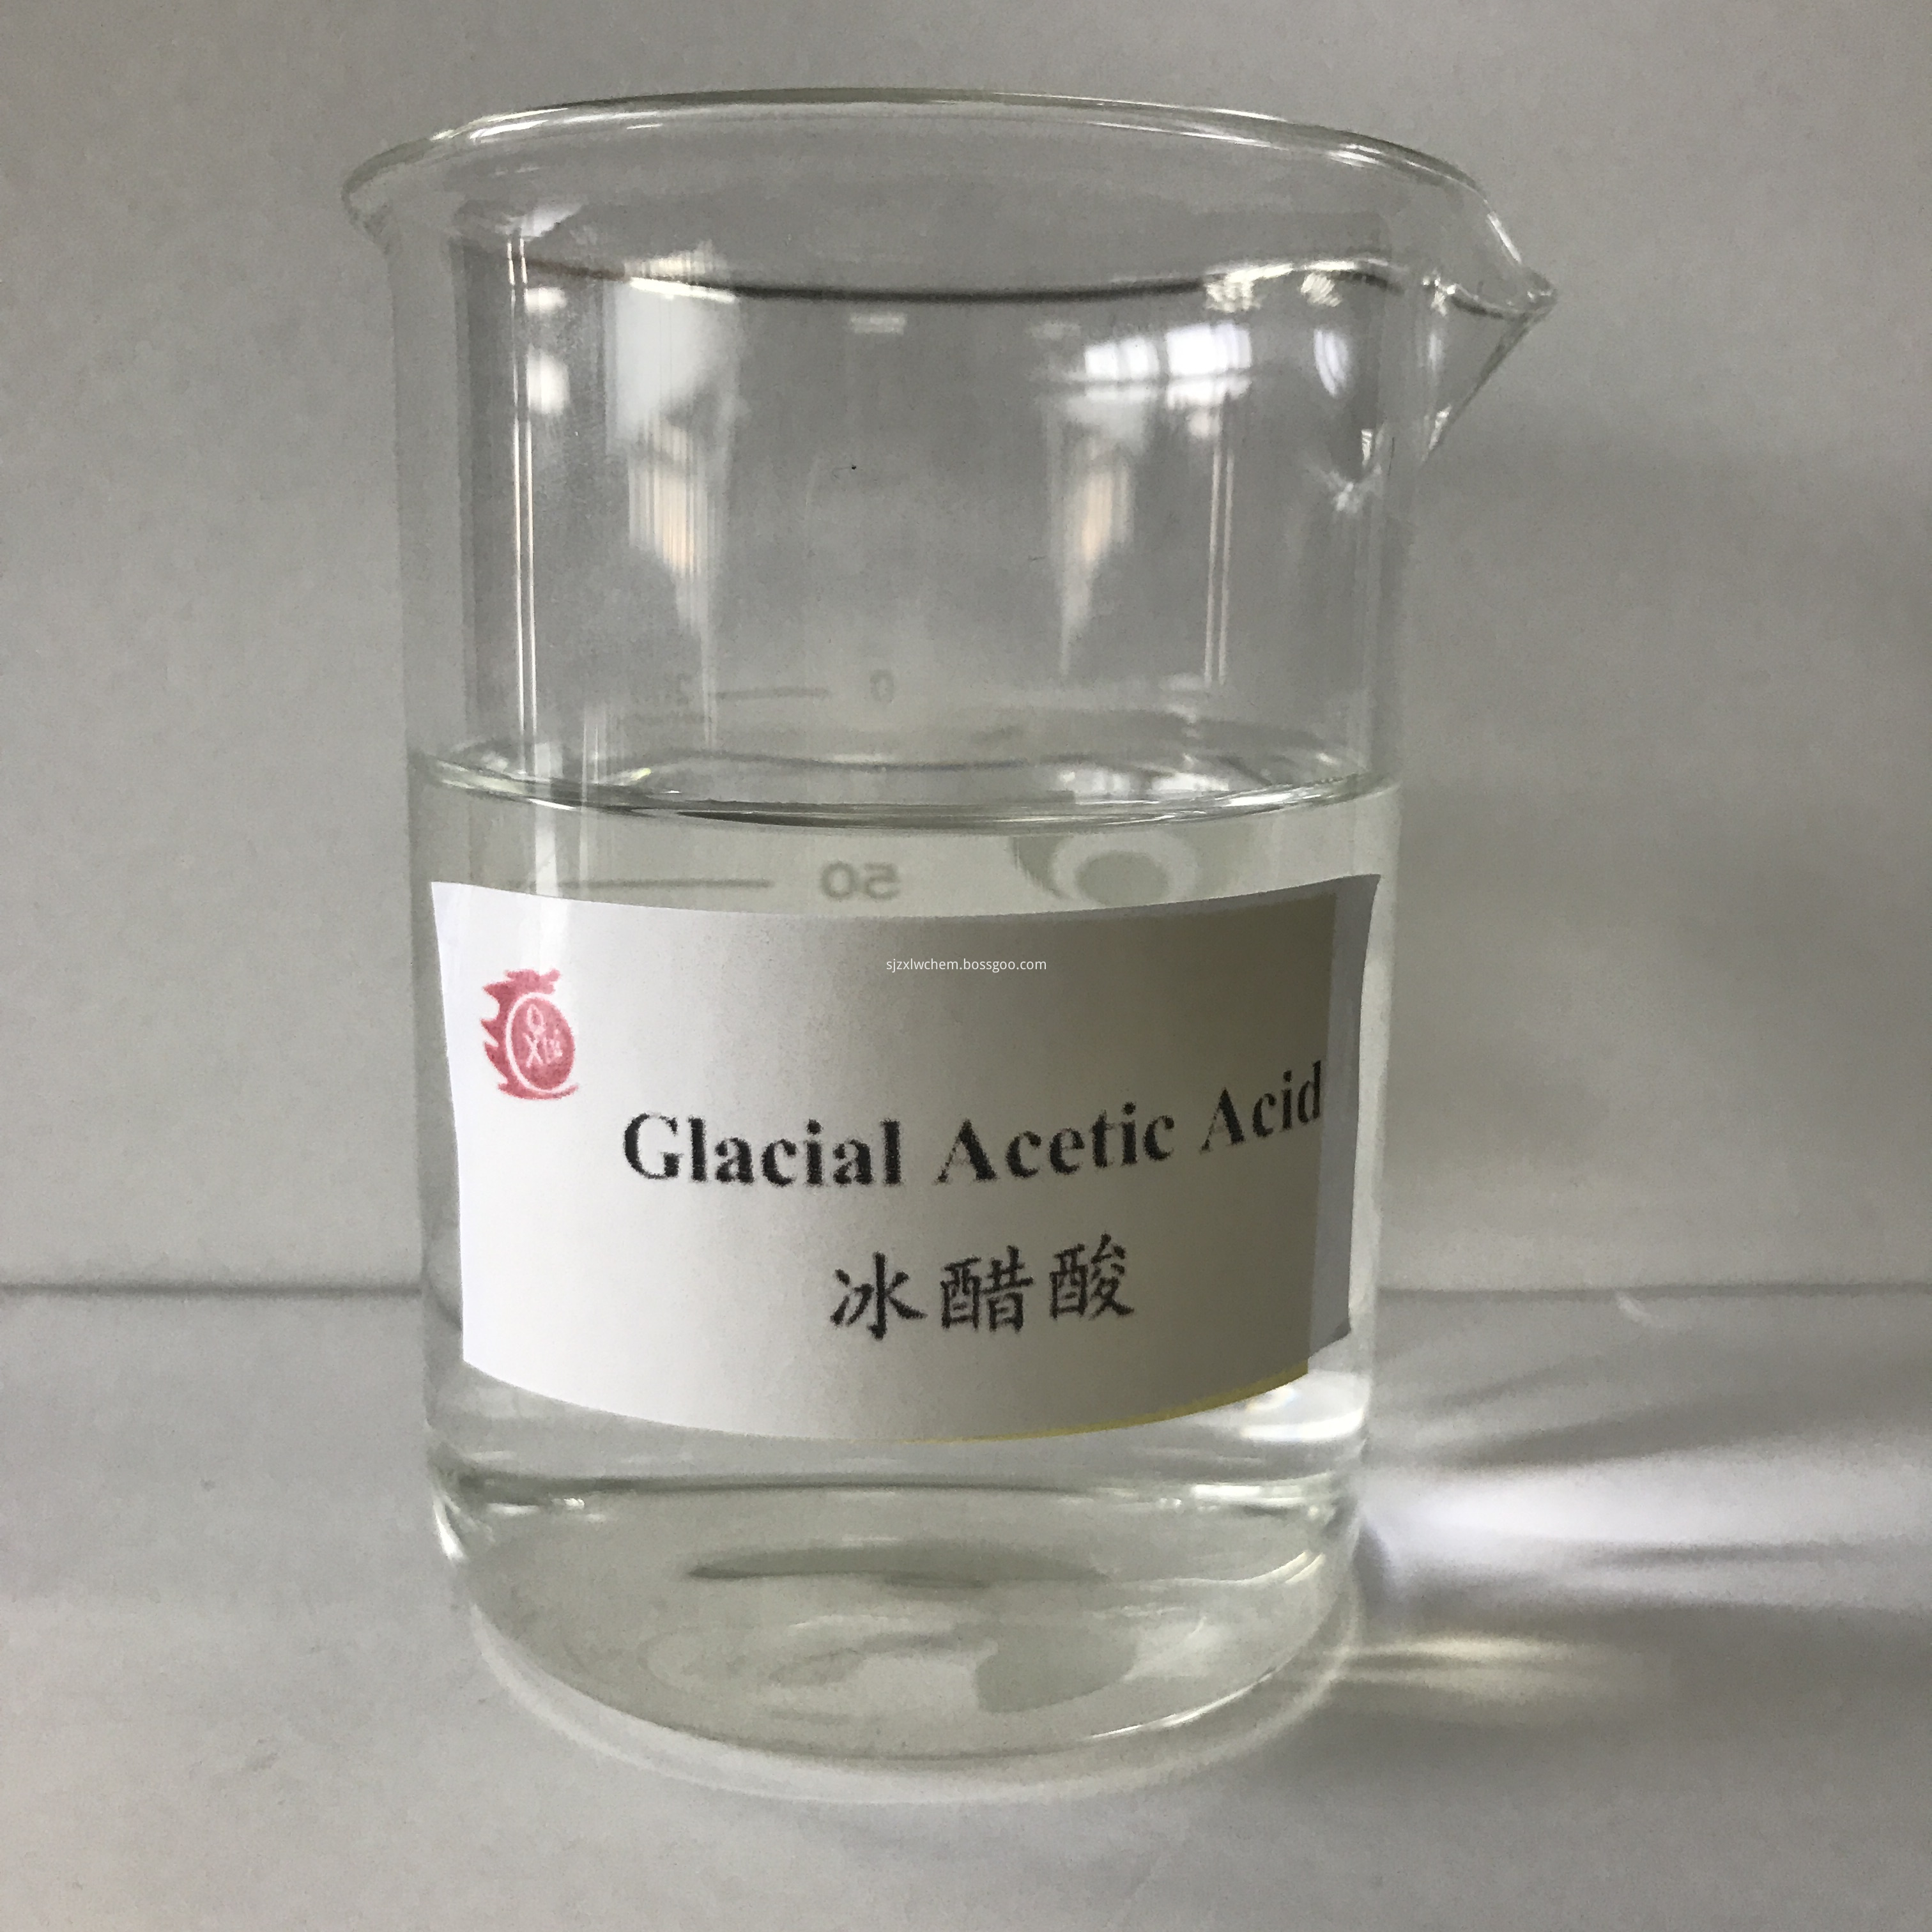 Glacial Aceitic Acid From White Vinegar